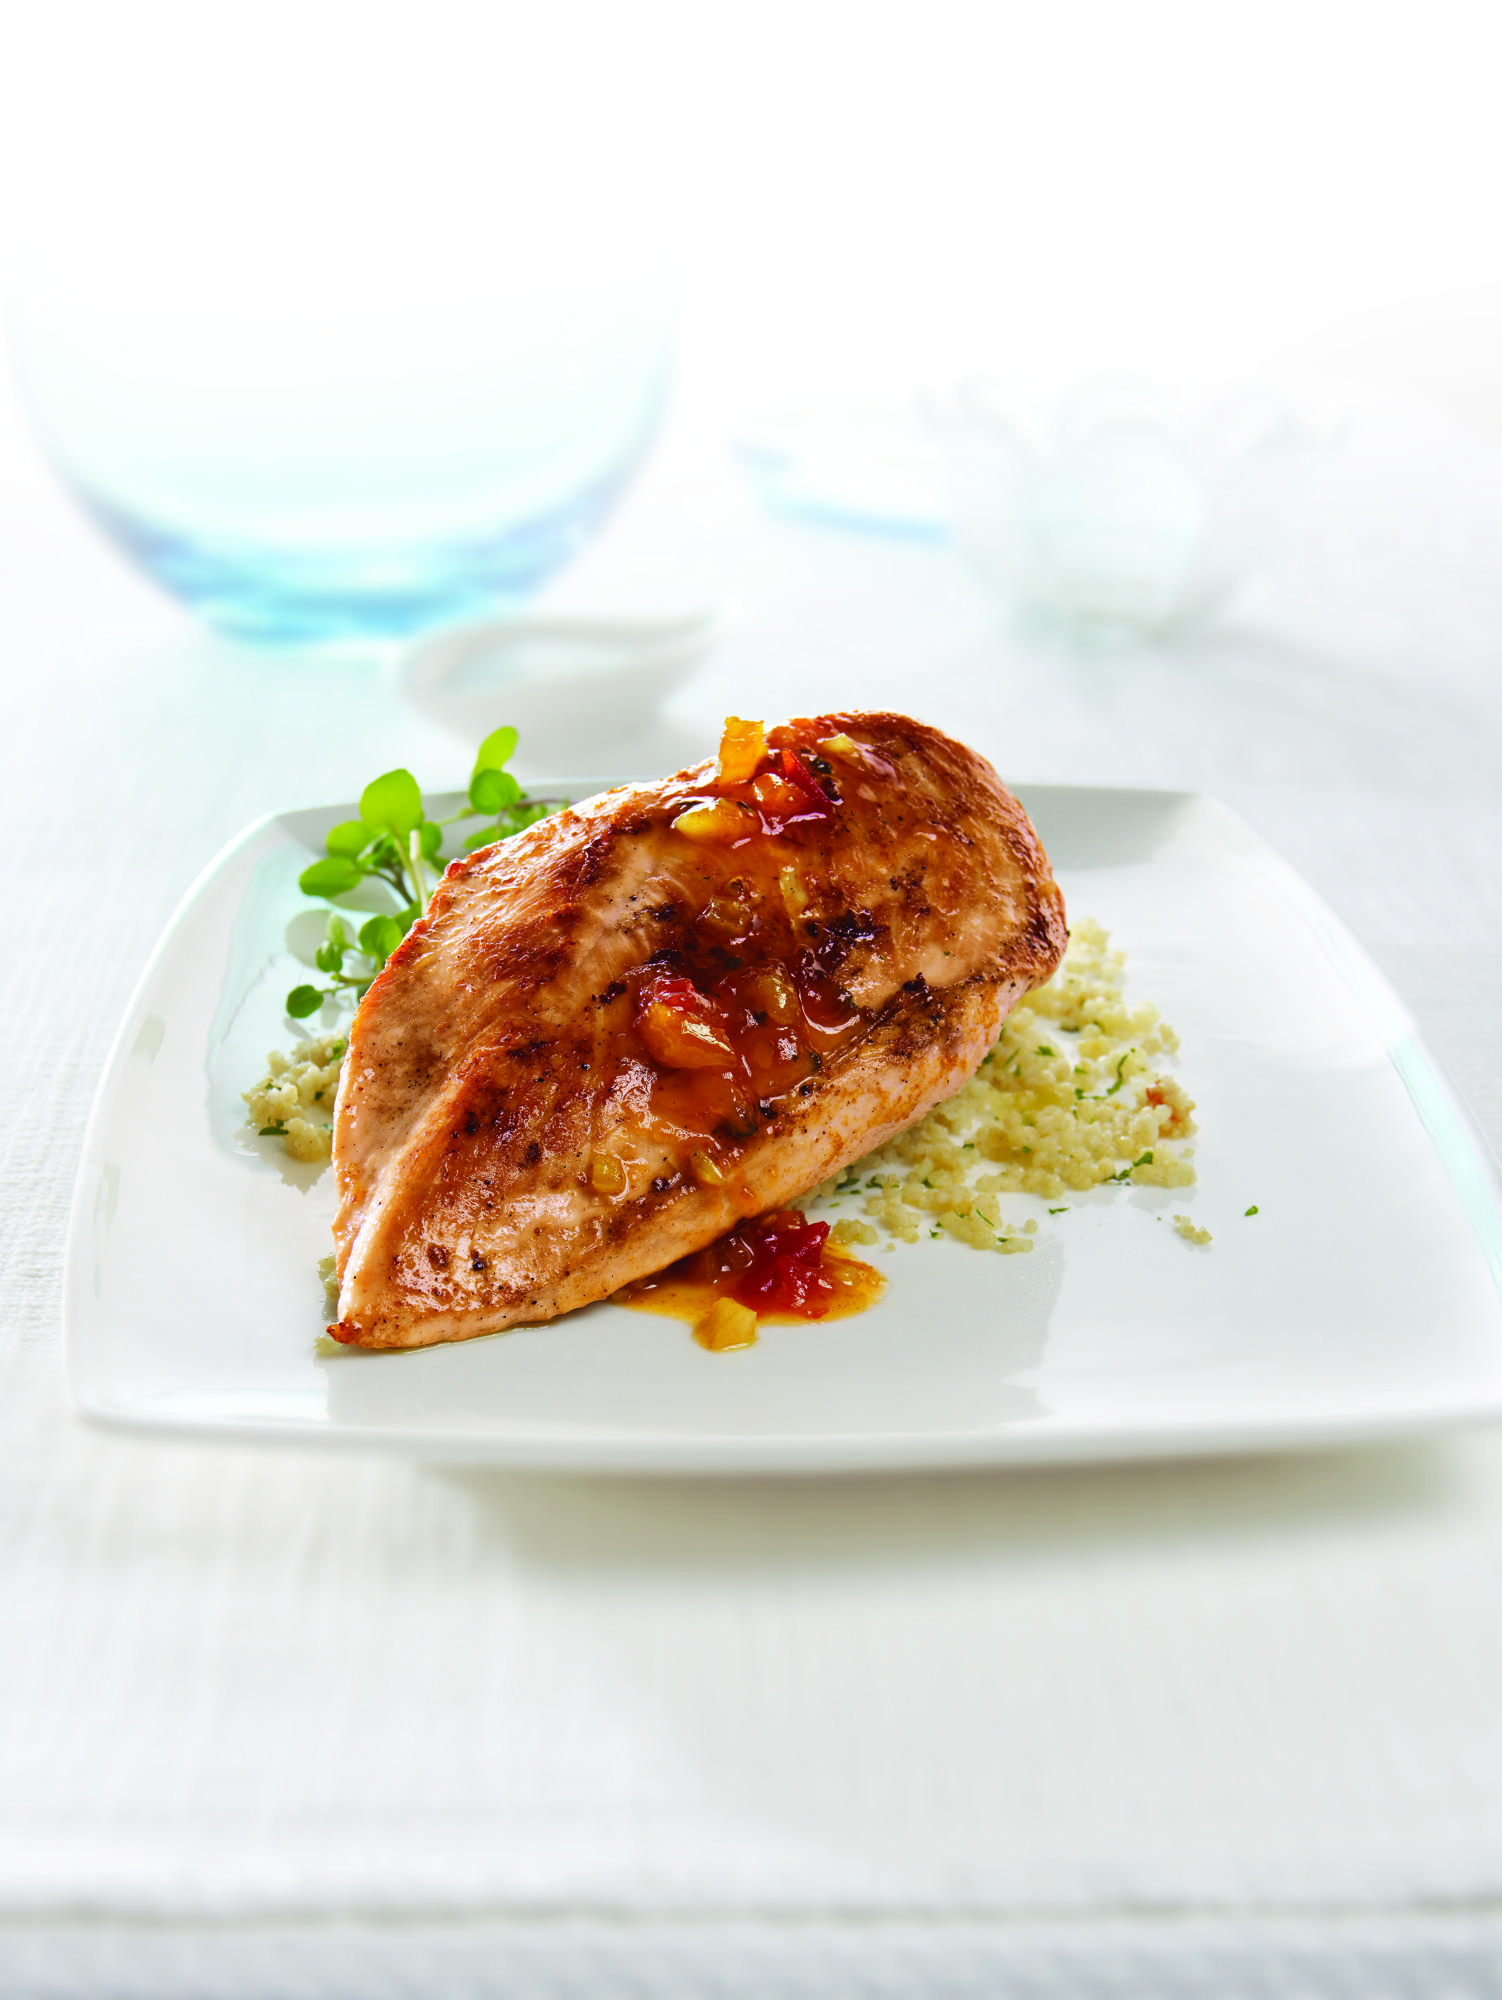 Curried Chicken Breast Fillets with Chutney